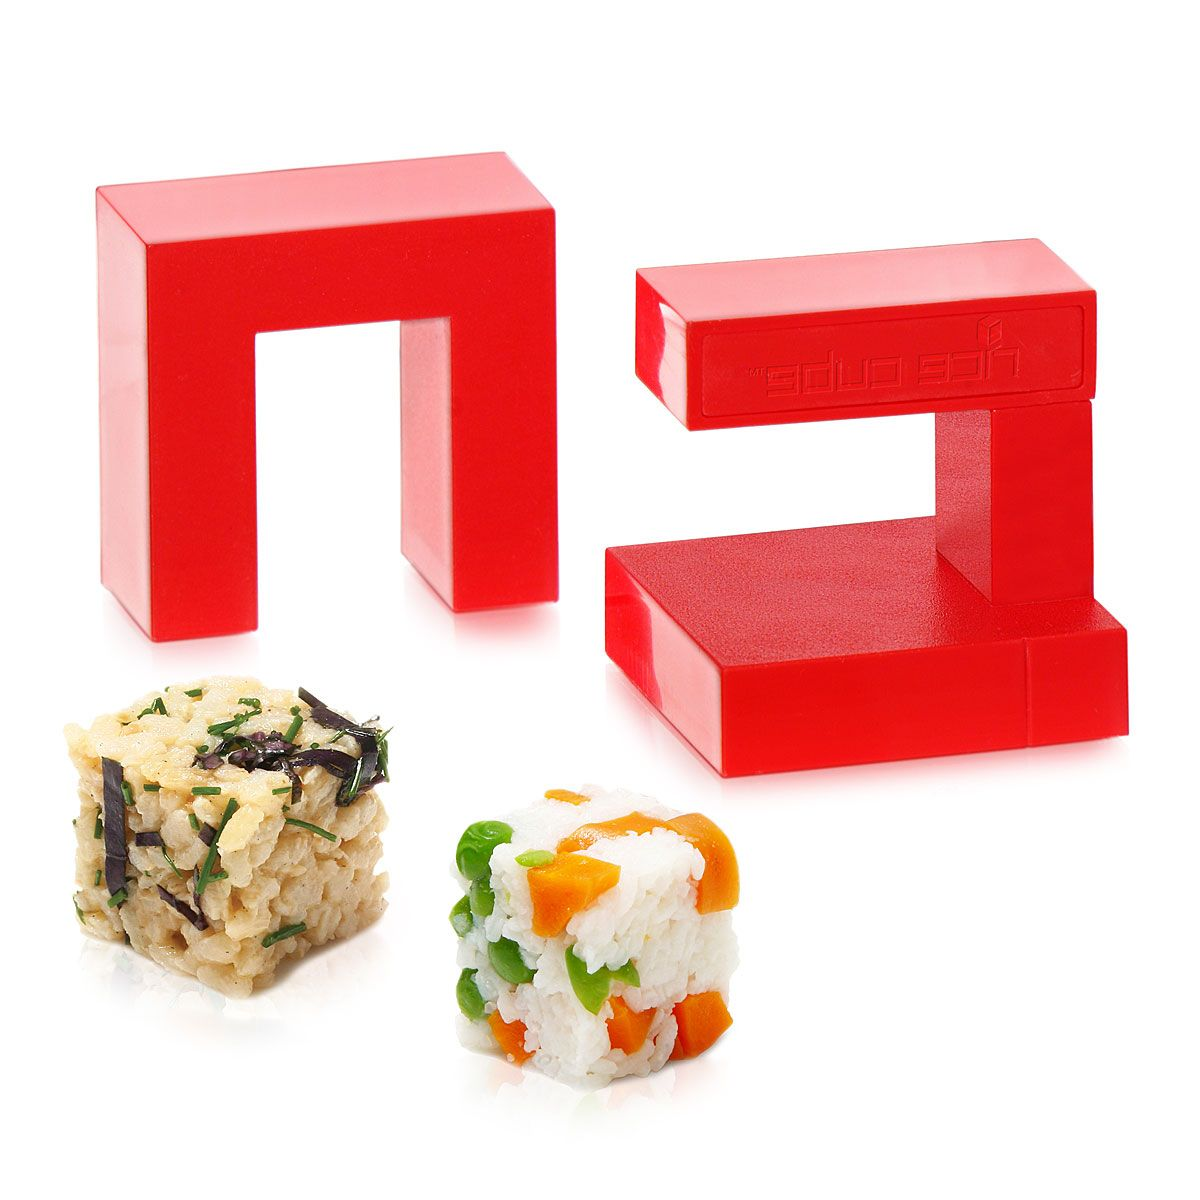 Cool Kitchen Items: Ten Creative Products #2, Feb 2